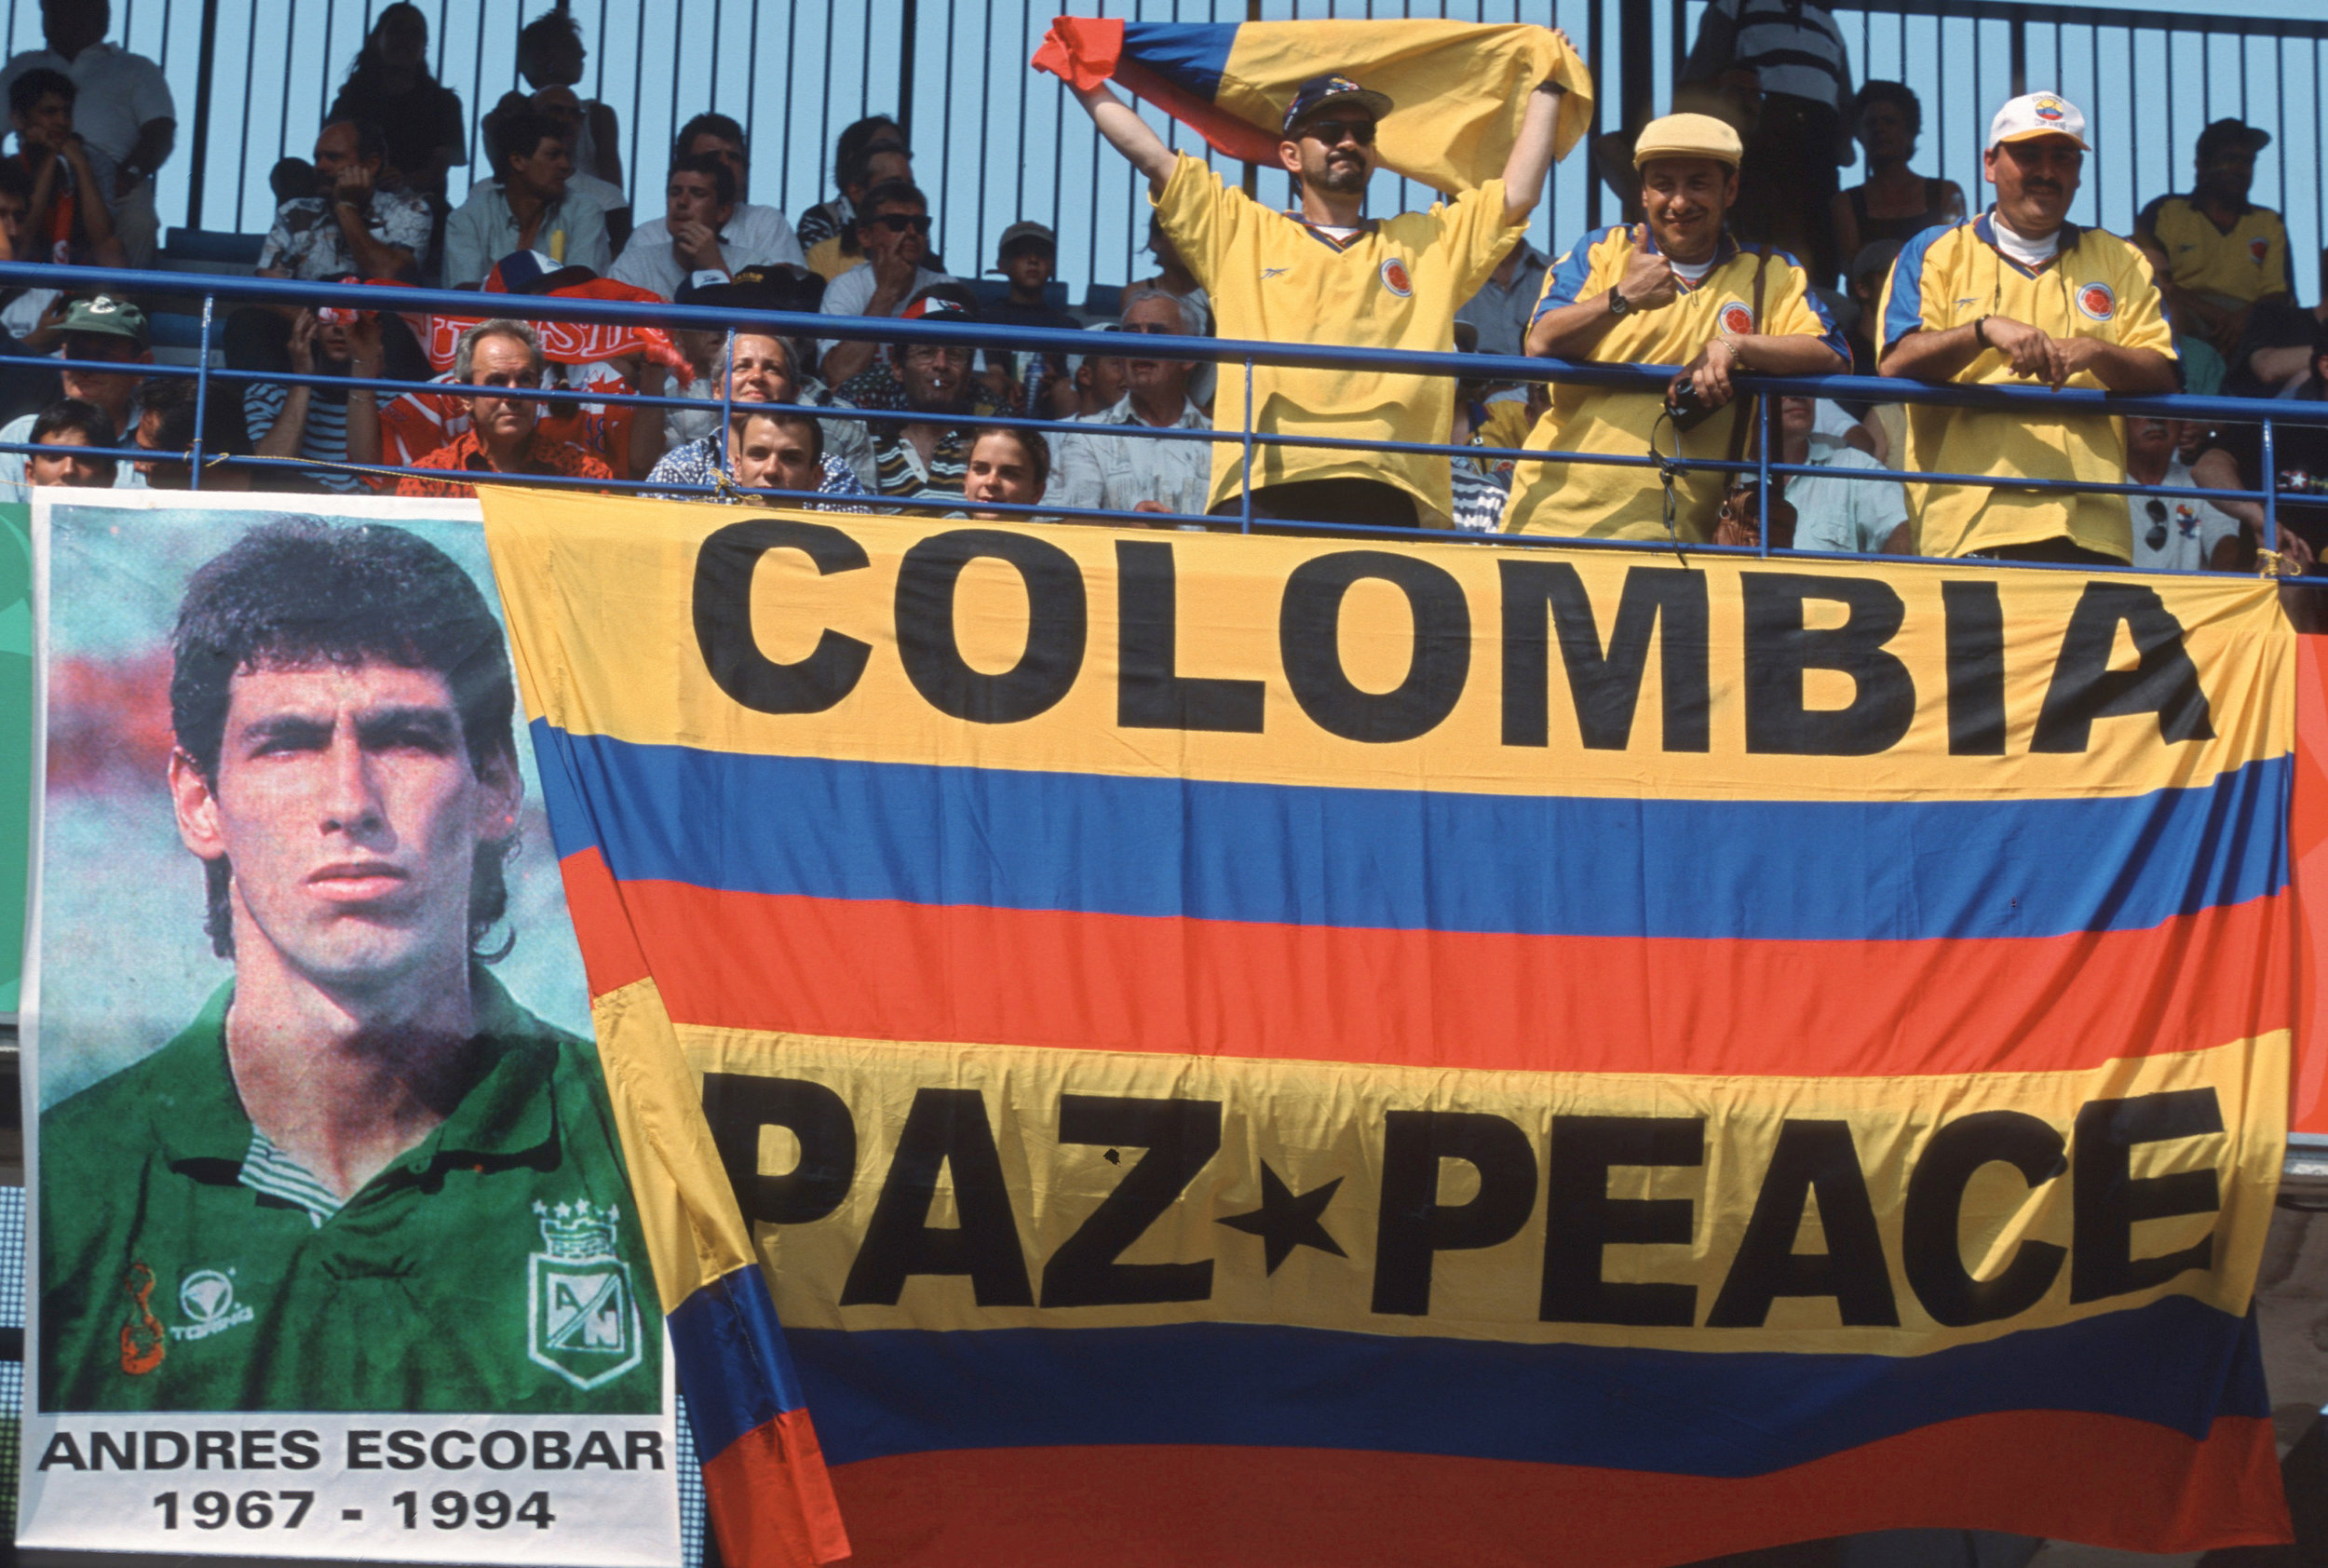 Colombia fans pay tribute to Andrés Escobar during a 1998 World Cup match between Colombia and Tunesia in Montpellier, France. Photo by Alexander Hassenstein.